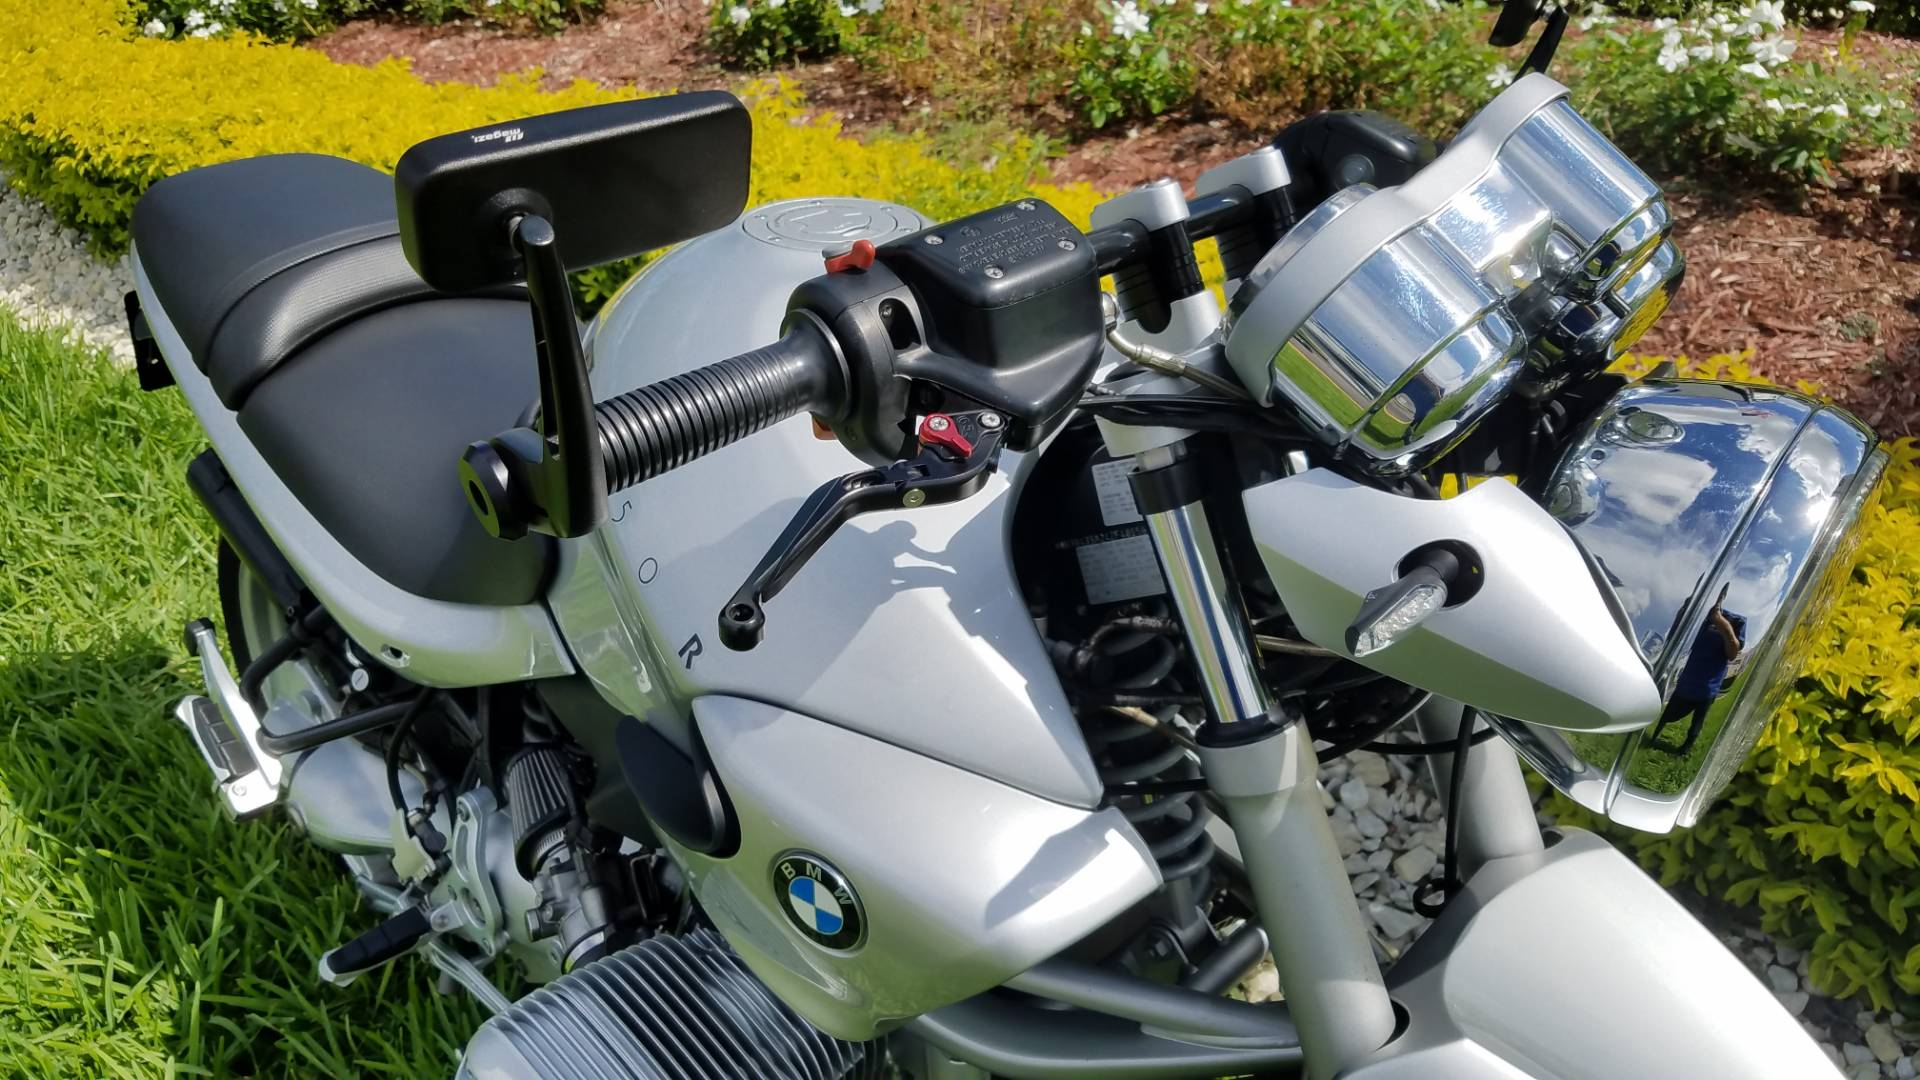 Used 2004 BMW R 1150 R For Sale, White R 1150 R For Sale, BMW Motorcycle R 1150 R, pre-owned BMW Motorcycle, BMW R1150 R, R1150 R